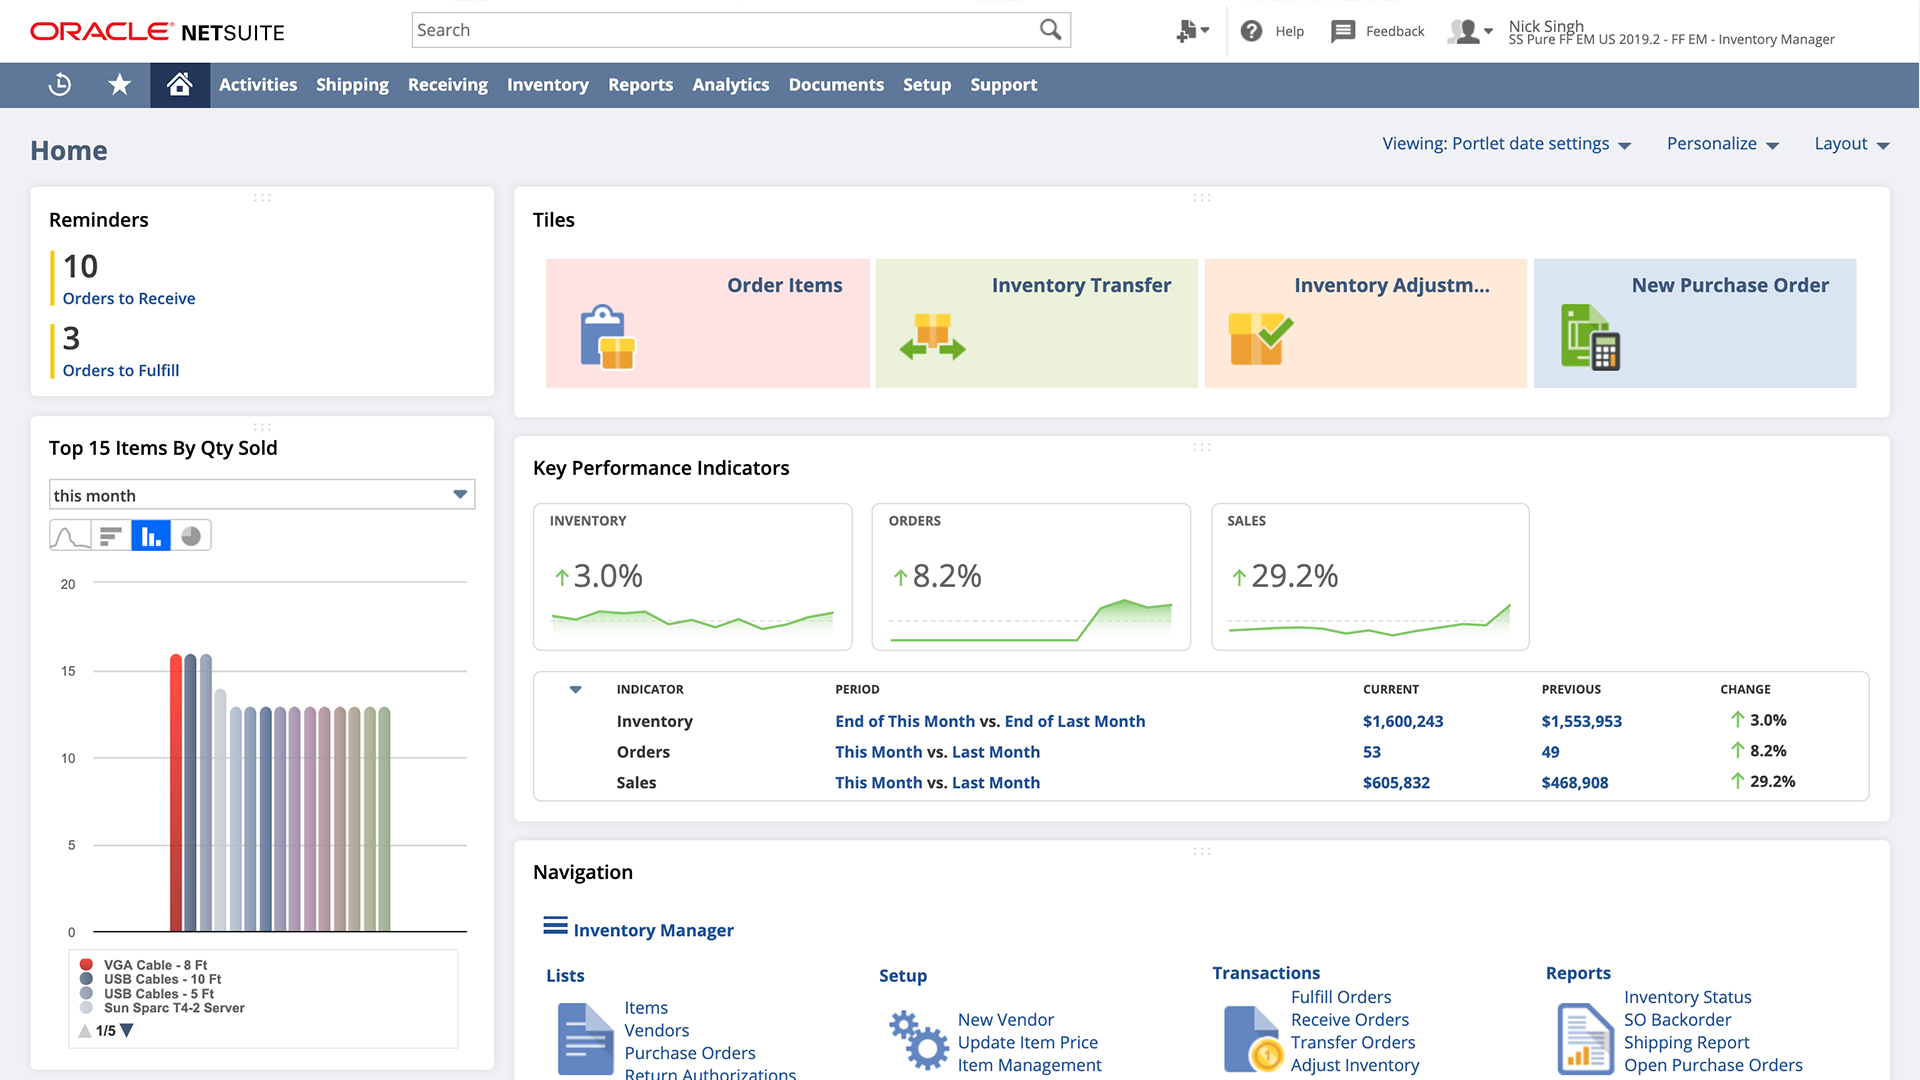 NetSuite Software - Role-based KPIs and Dashboards: Inventory Manager